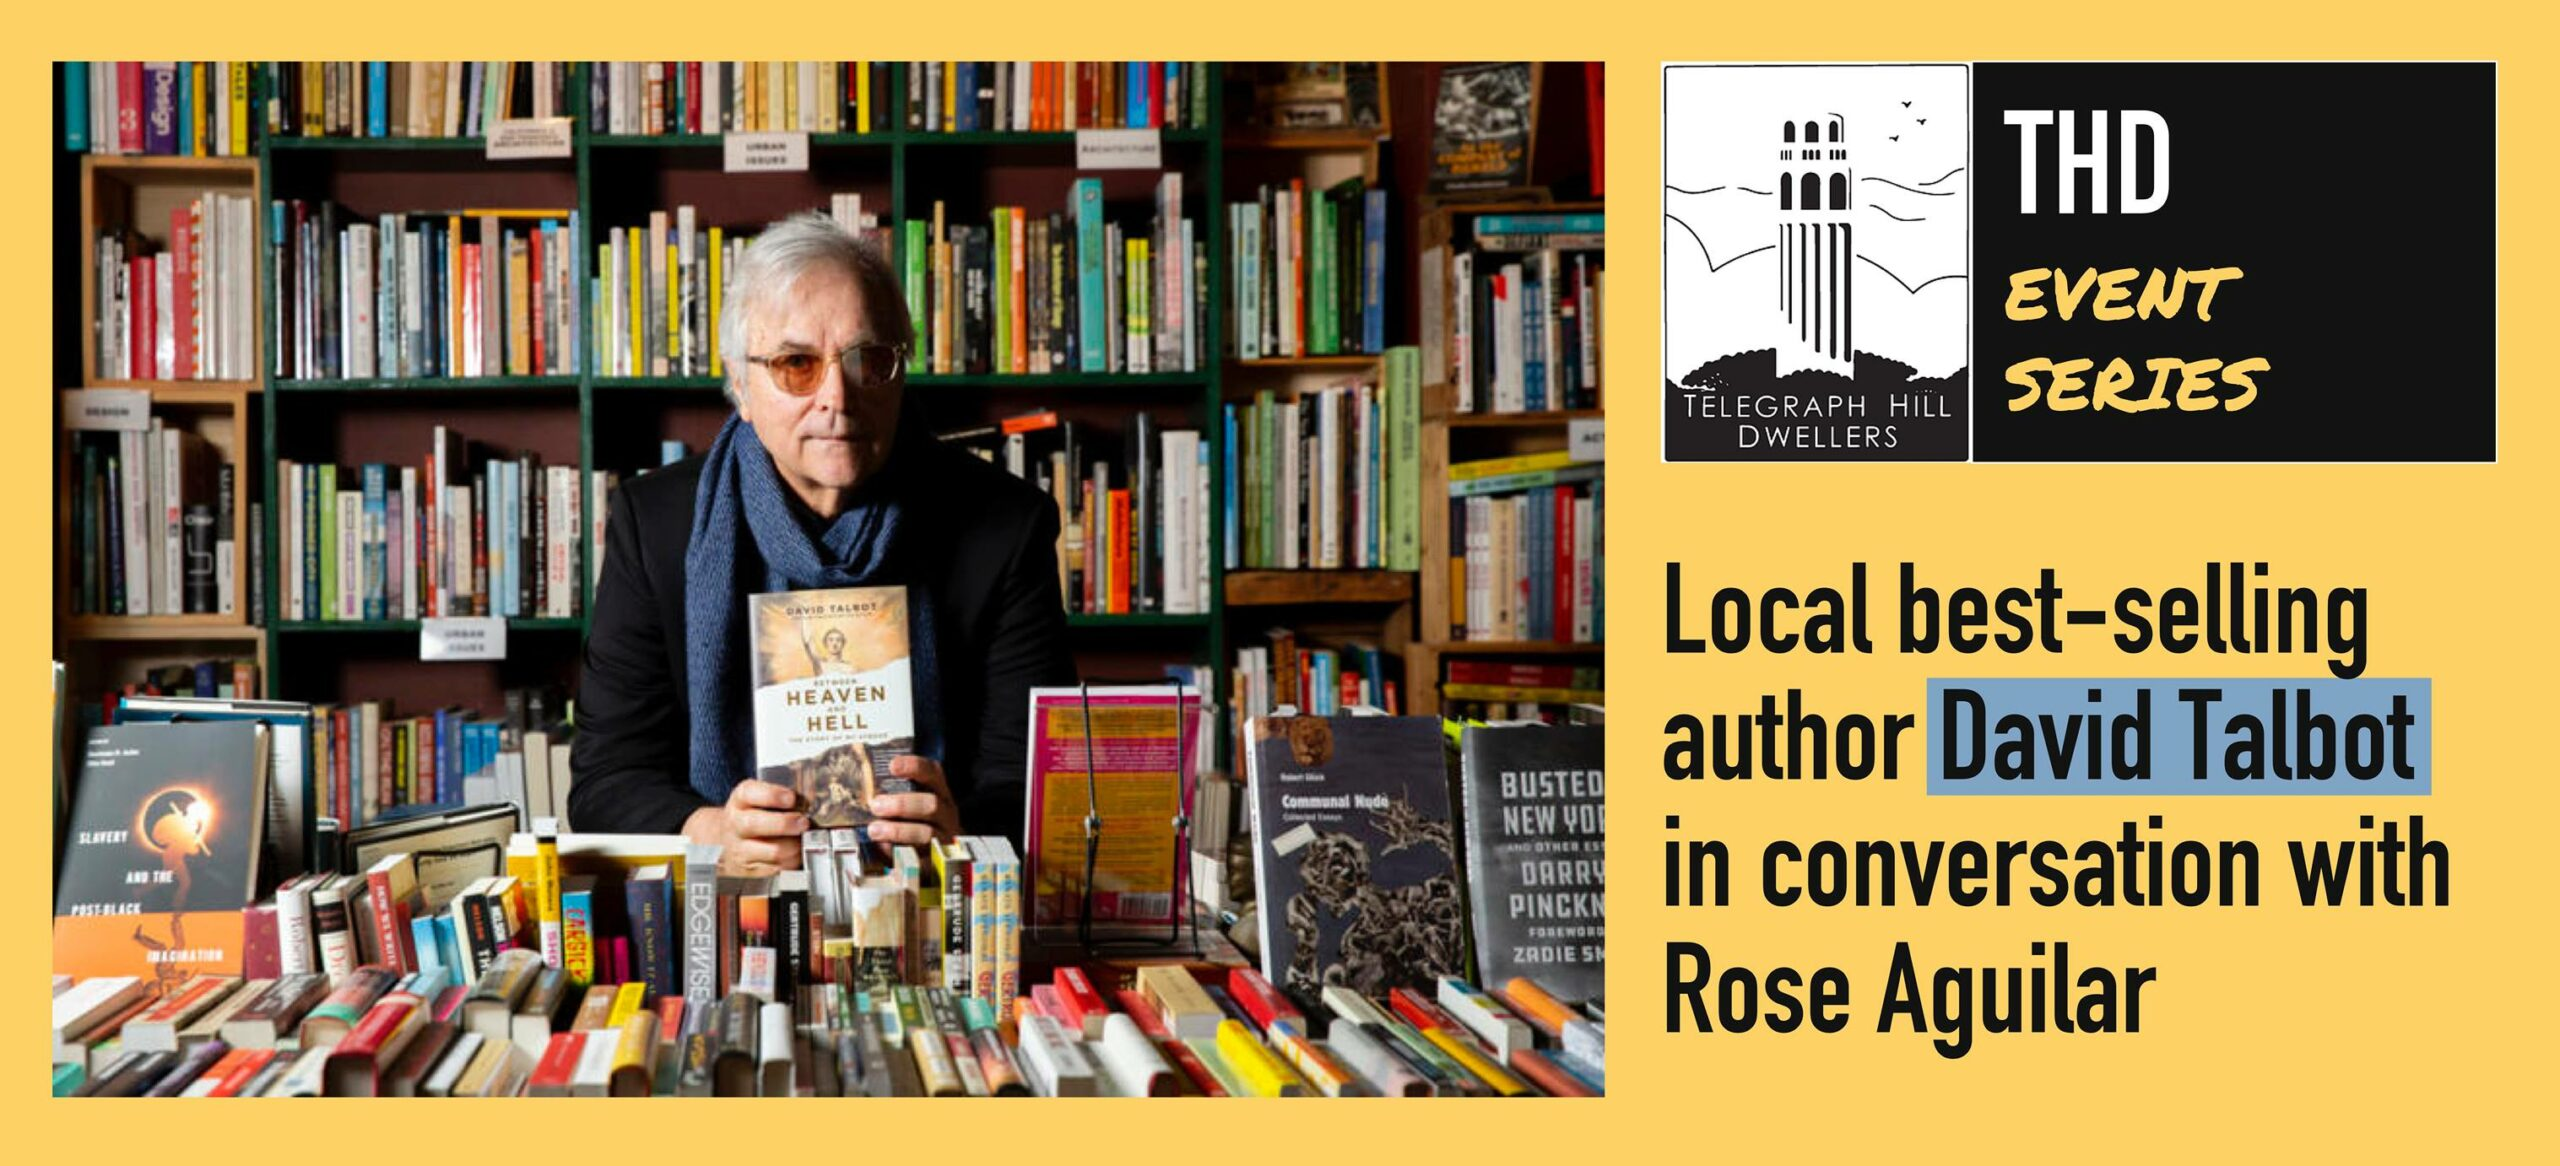 Local best-selling author David Talbot in conversation with Rose Aguilar